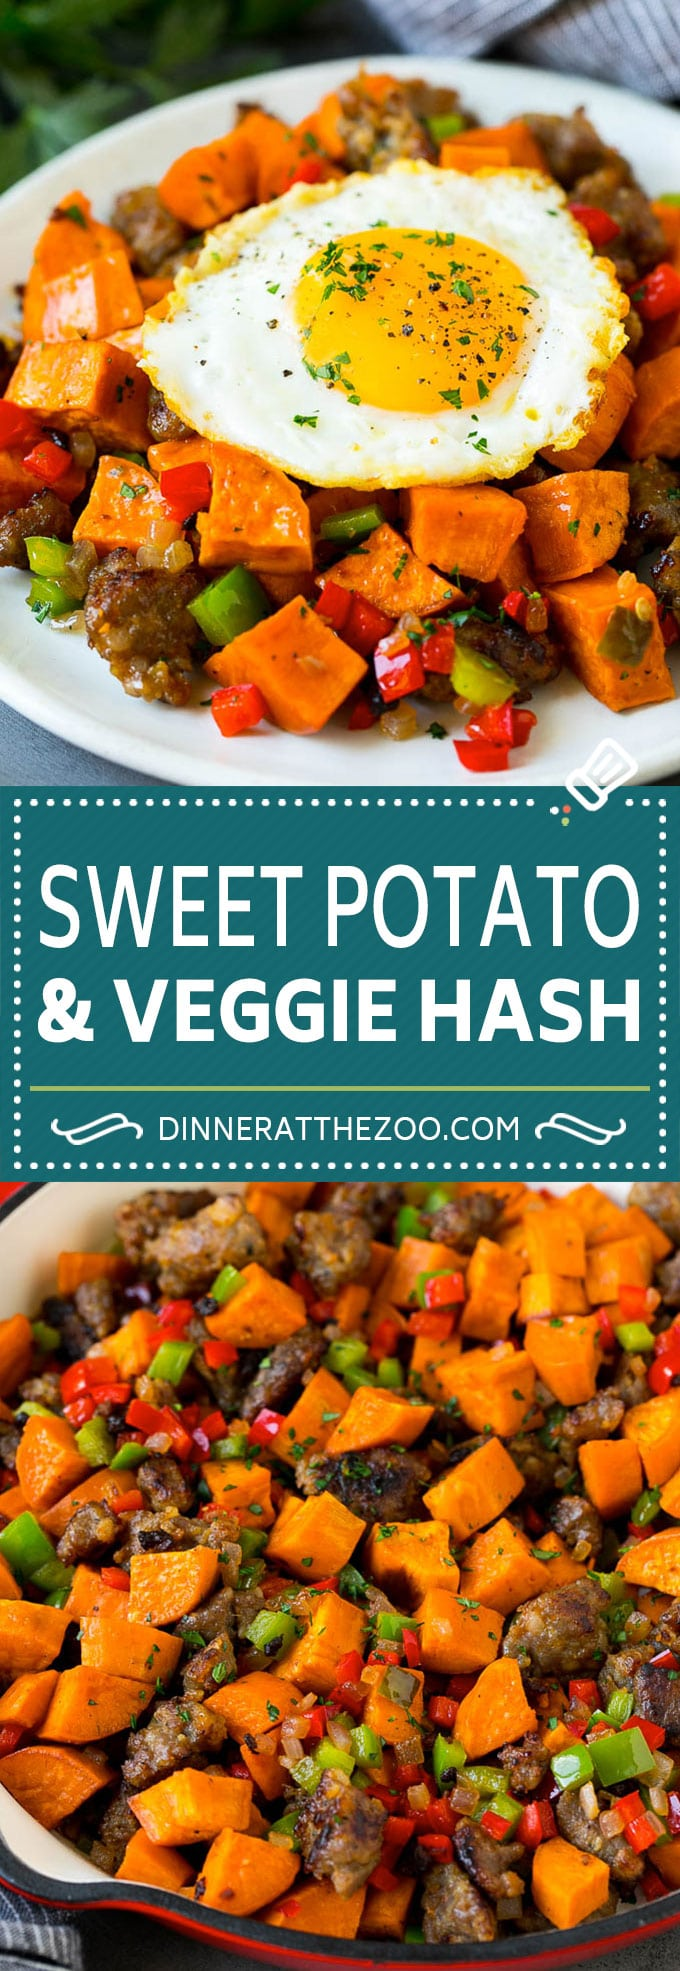 Sweet Potato Hash #sweetpotato #sausage #breakfast #brunch #dinneratthezoo